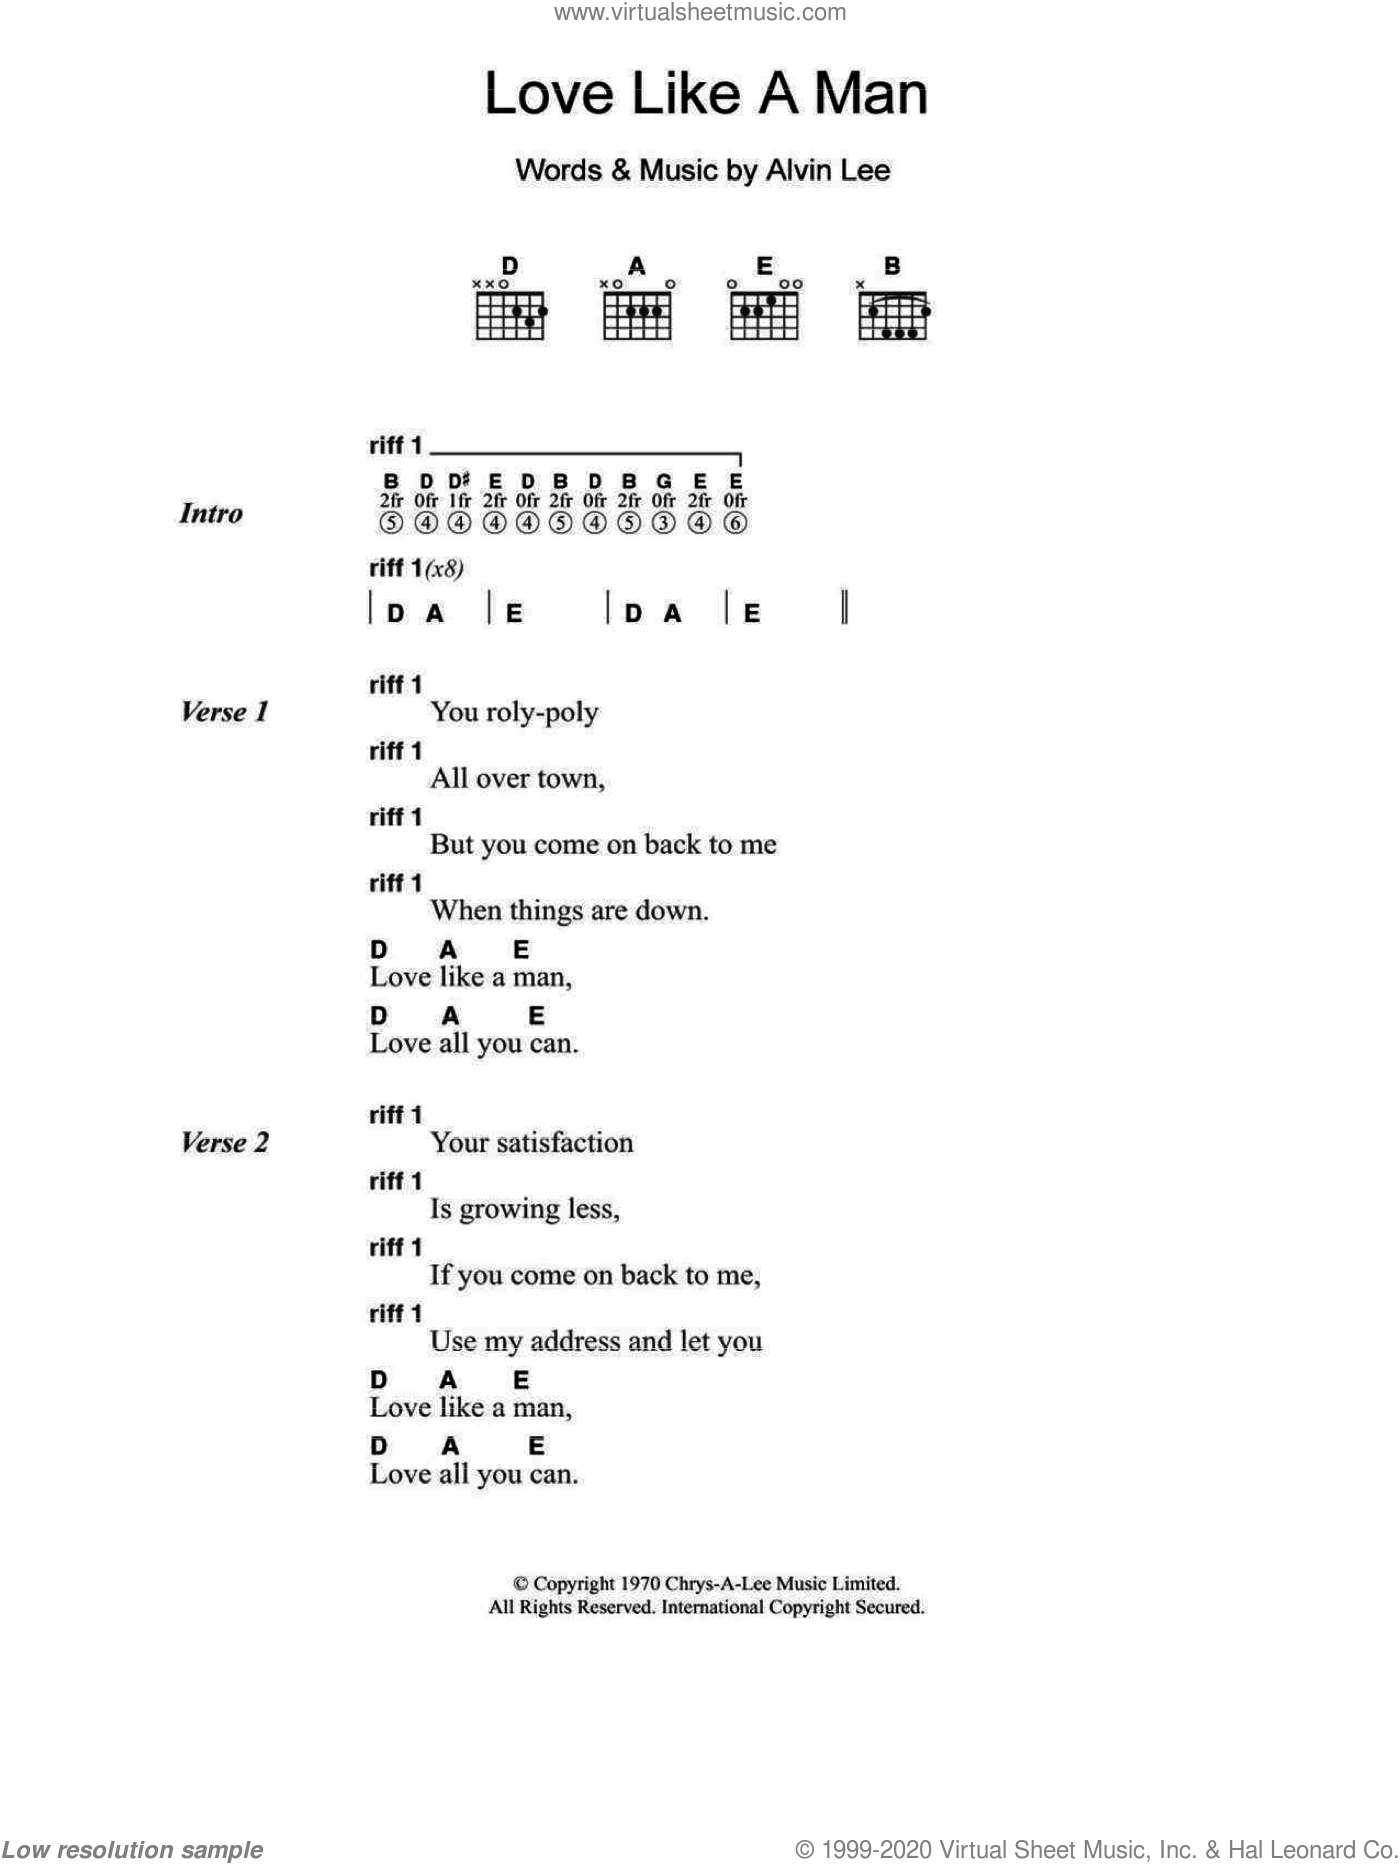 After - Love Like A Man sheet music for guitar (chords) [PDF]